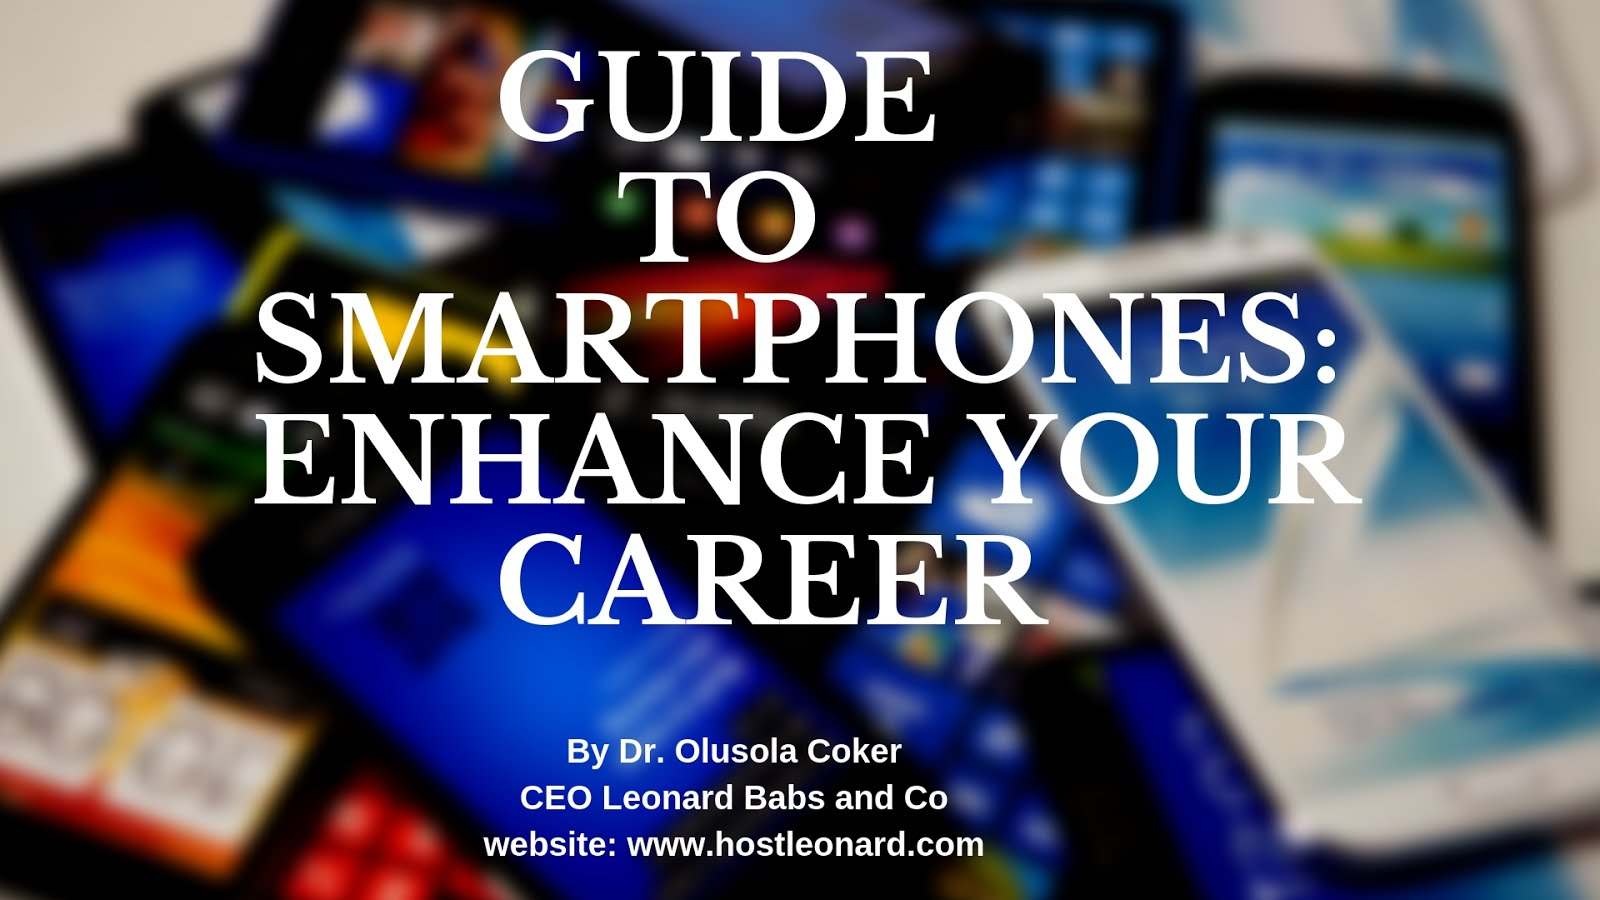 Guide to Smartphones: Enhance Your Career